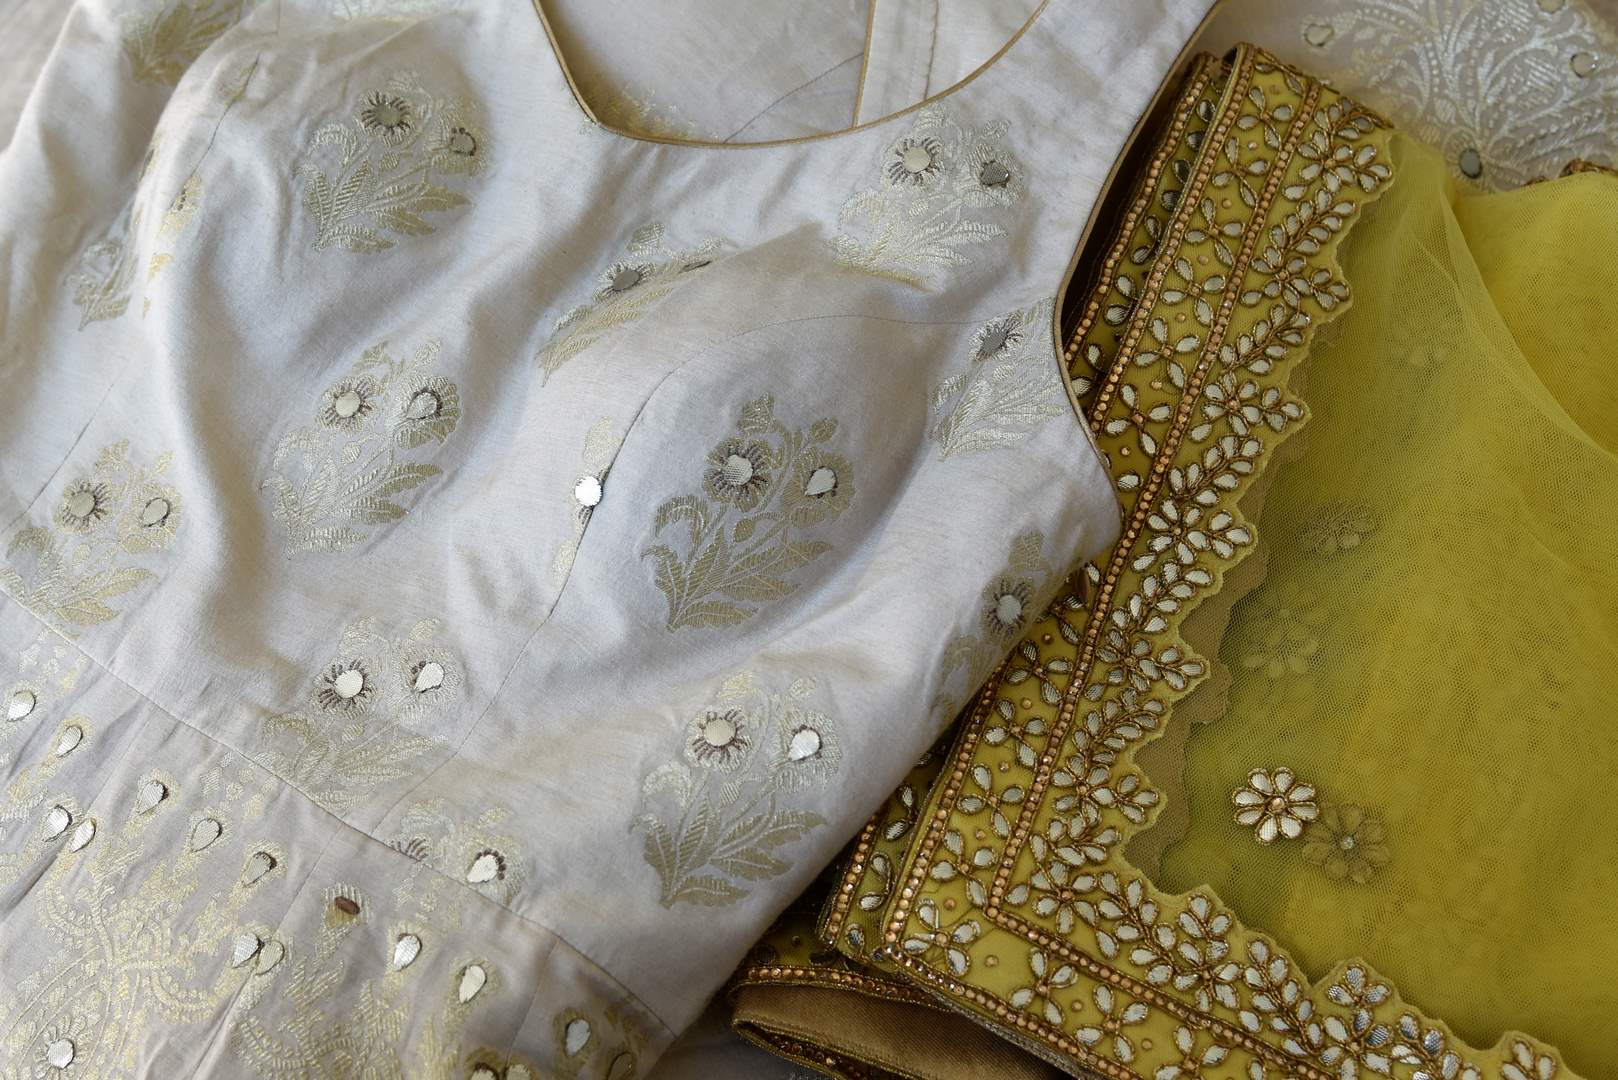 Buy white gota patti embroidery muga Banarasi suit with dupatta online in USA. Adorn your style with a range of exquisite Kanchipuram silk saris from Pure Elegance clothing store in USA. We have an exquisite range of Indian designer sarees, silk sarees, Banarasi saris and many other varieties also available at our online store.-details